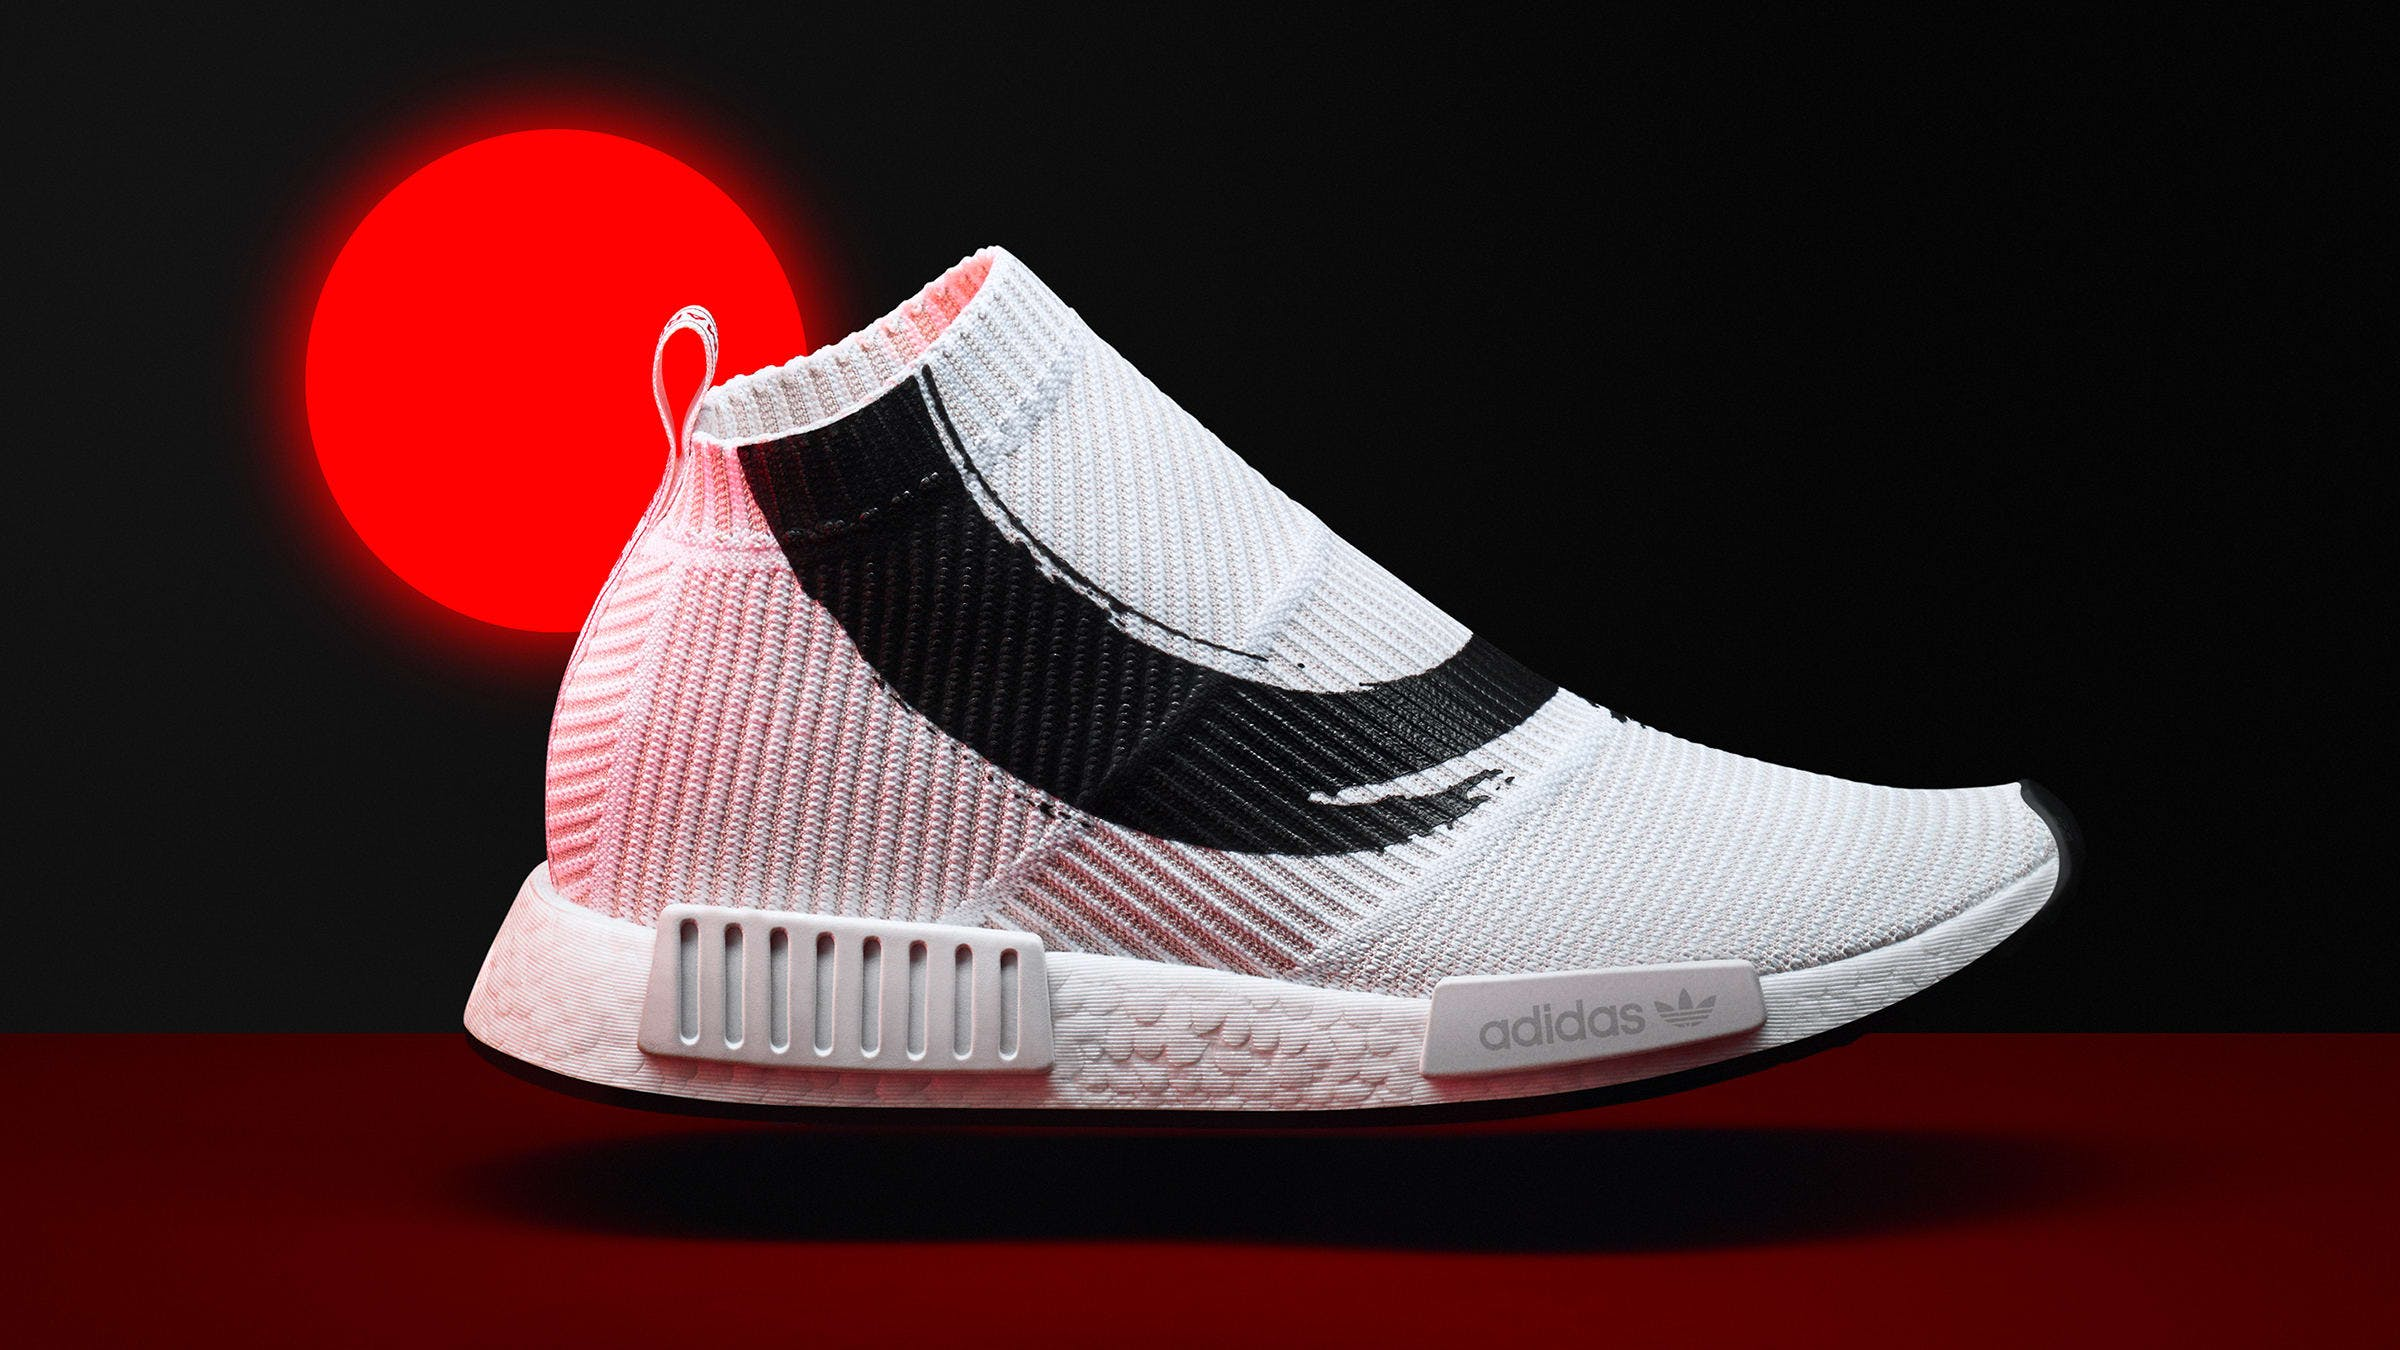 Víspera de Todos los Santos tengo hambre dejar  END. Features | adidas Energy NMD_CS1 PK - Register Now on END. Launches